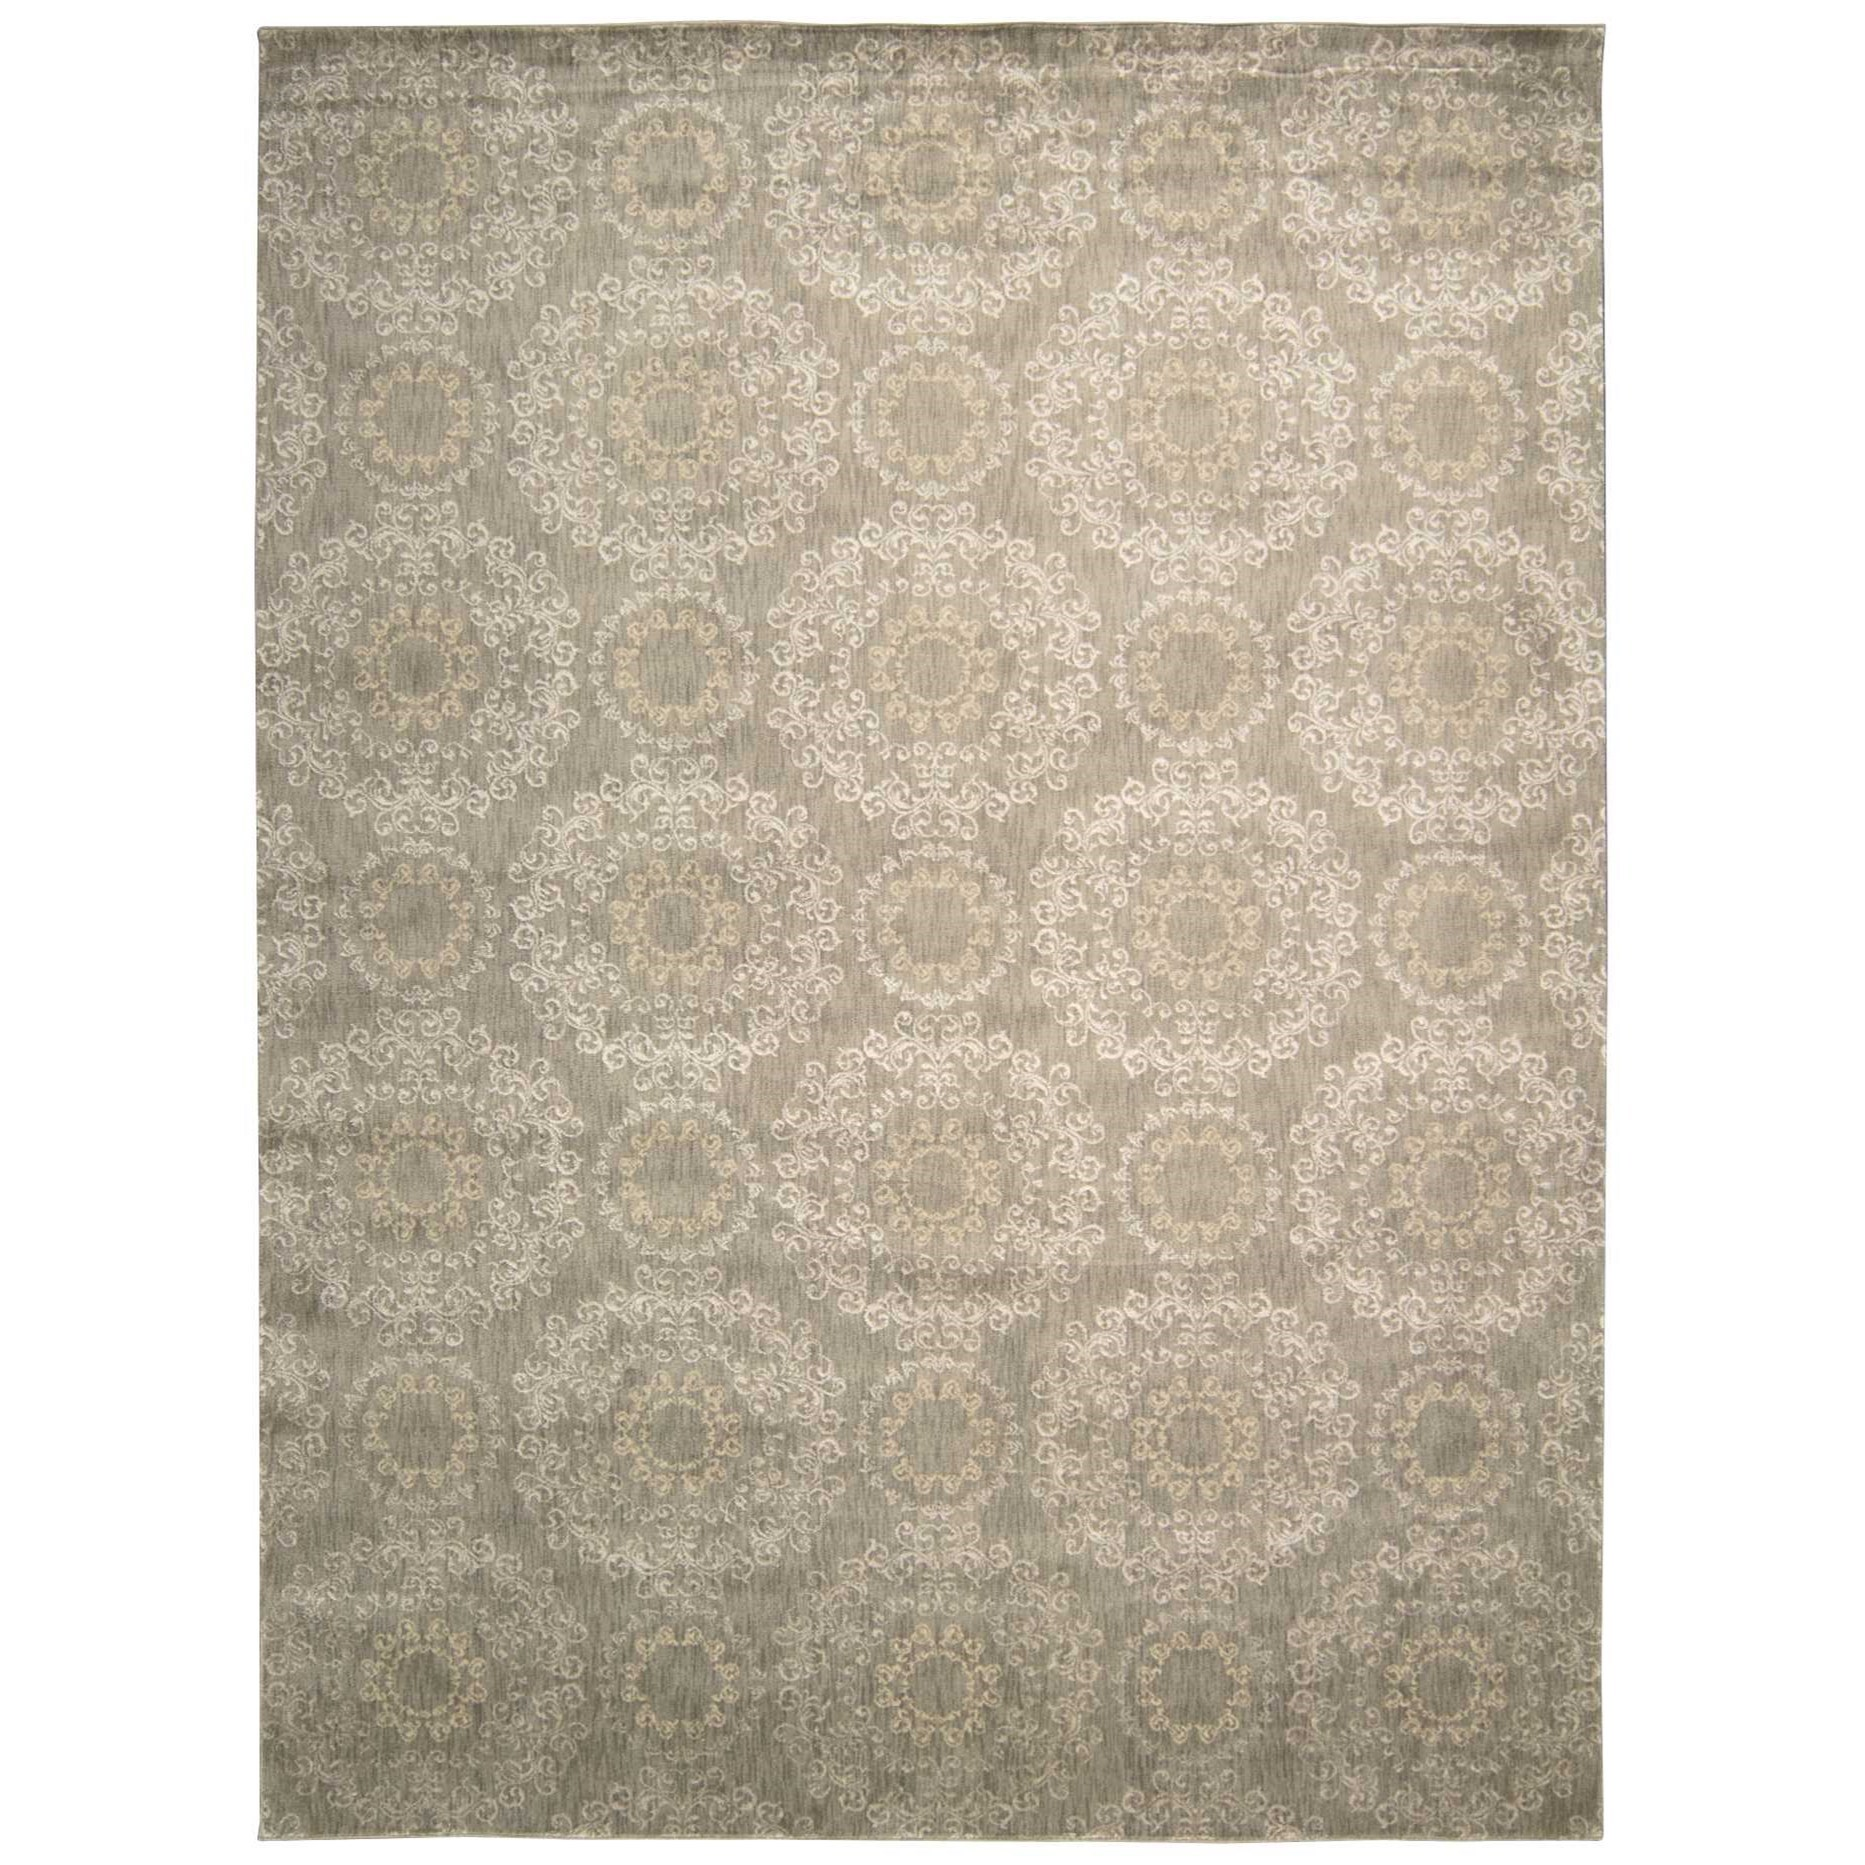 "Nourison Tranquility 7'9"" x 10'10"" Stone Rectangle Rug - Item Number: TNQ03 STONE 79X1010"